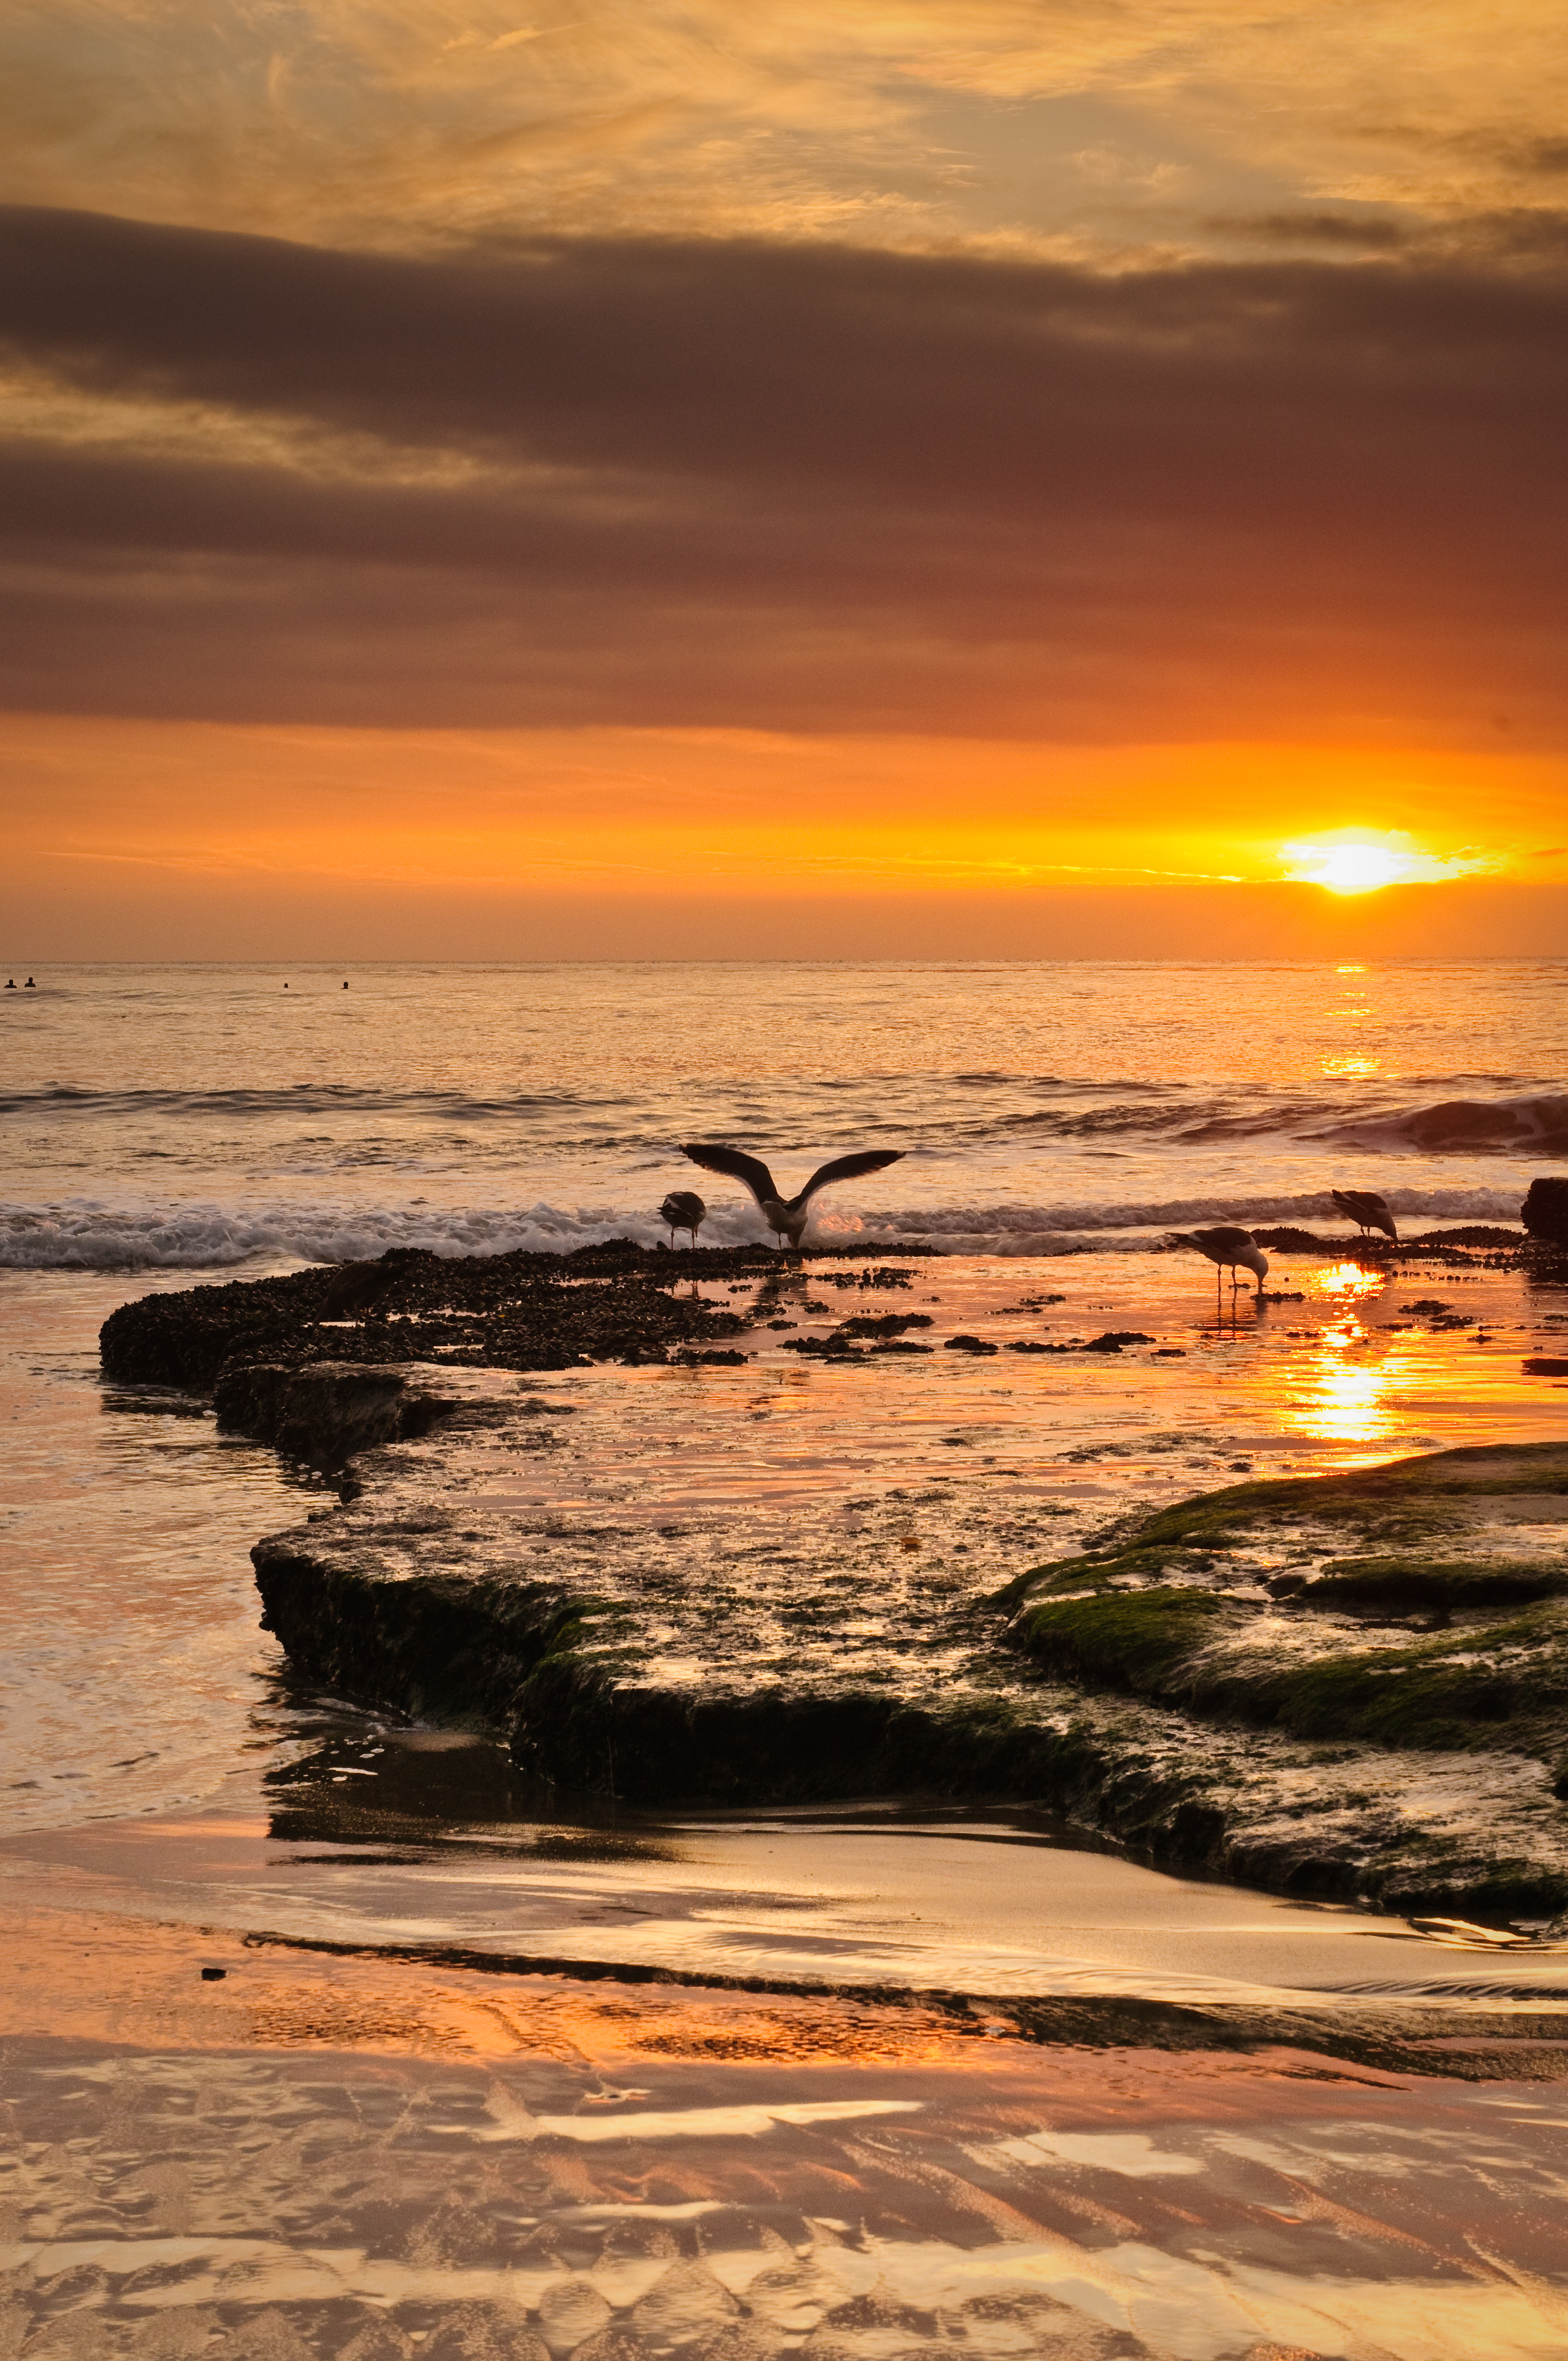 133399 download wallpaper Nature, Birds, Sunset, Sea, Seagulls, Waves, Coast screensavers and pictures for free